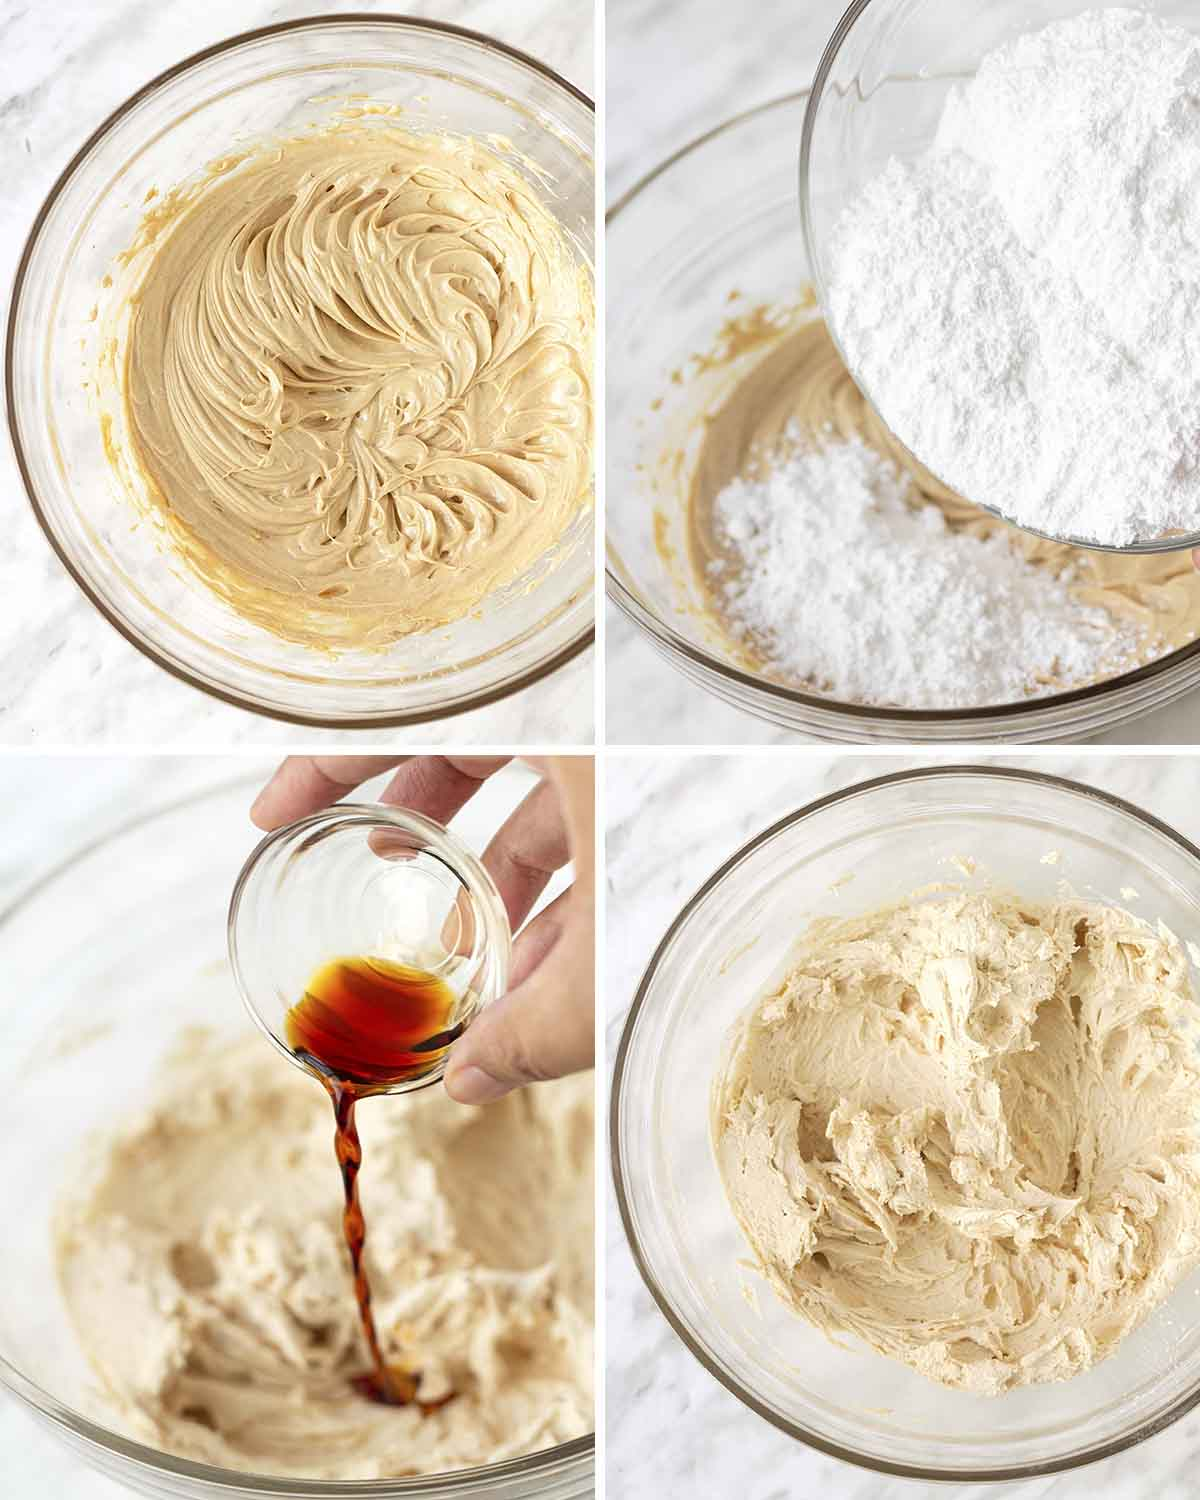 A collage of four images showing the sequence of steps needed to make peanut butter buttercream.